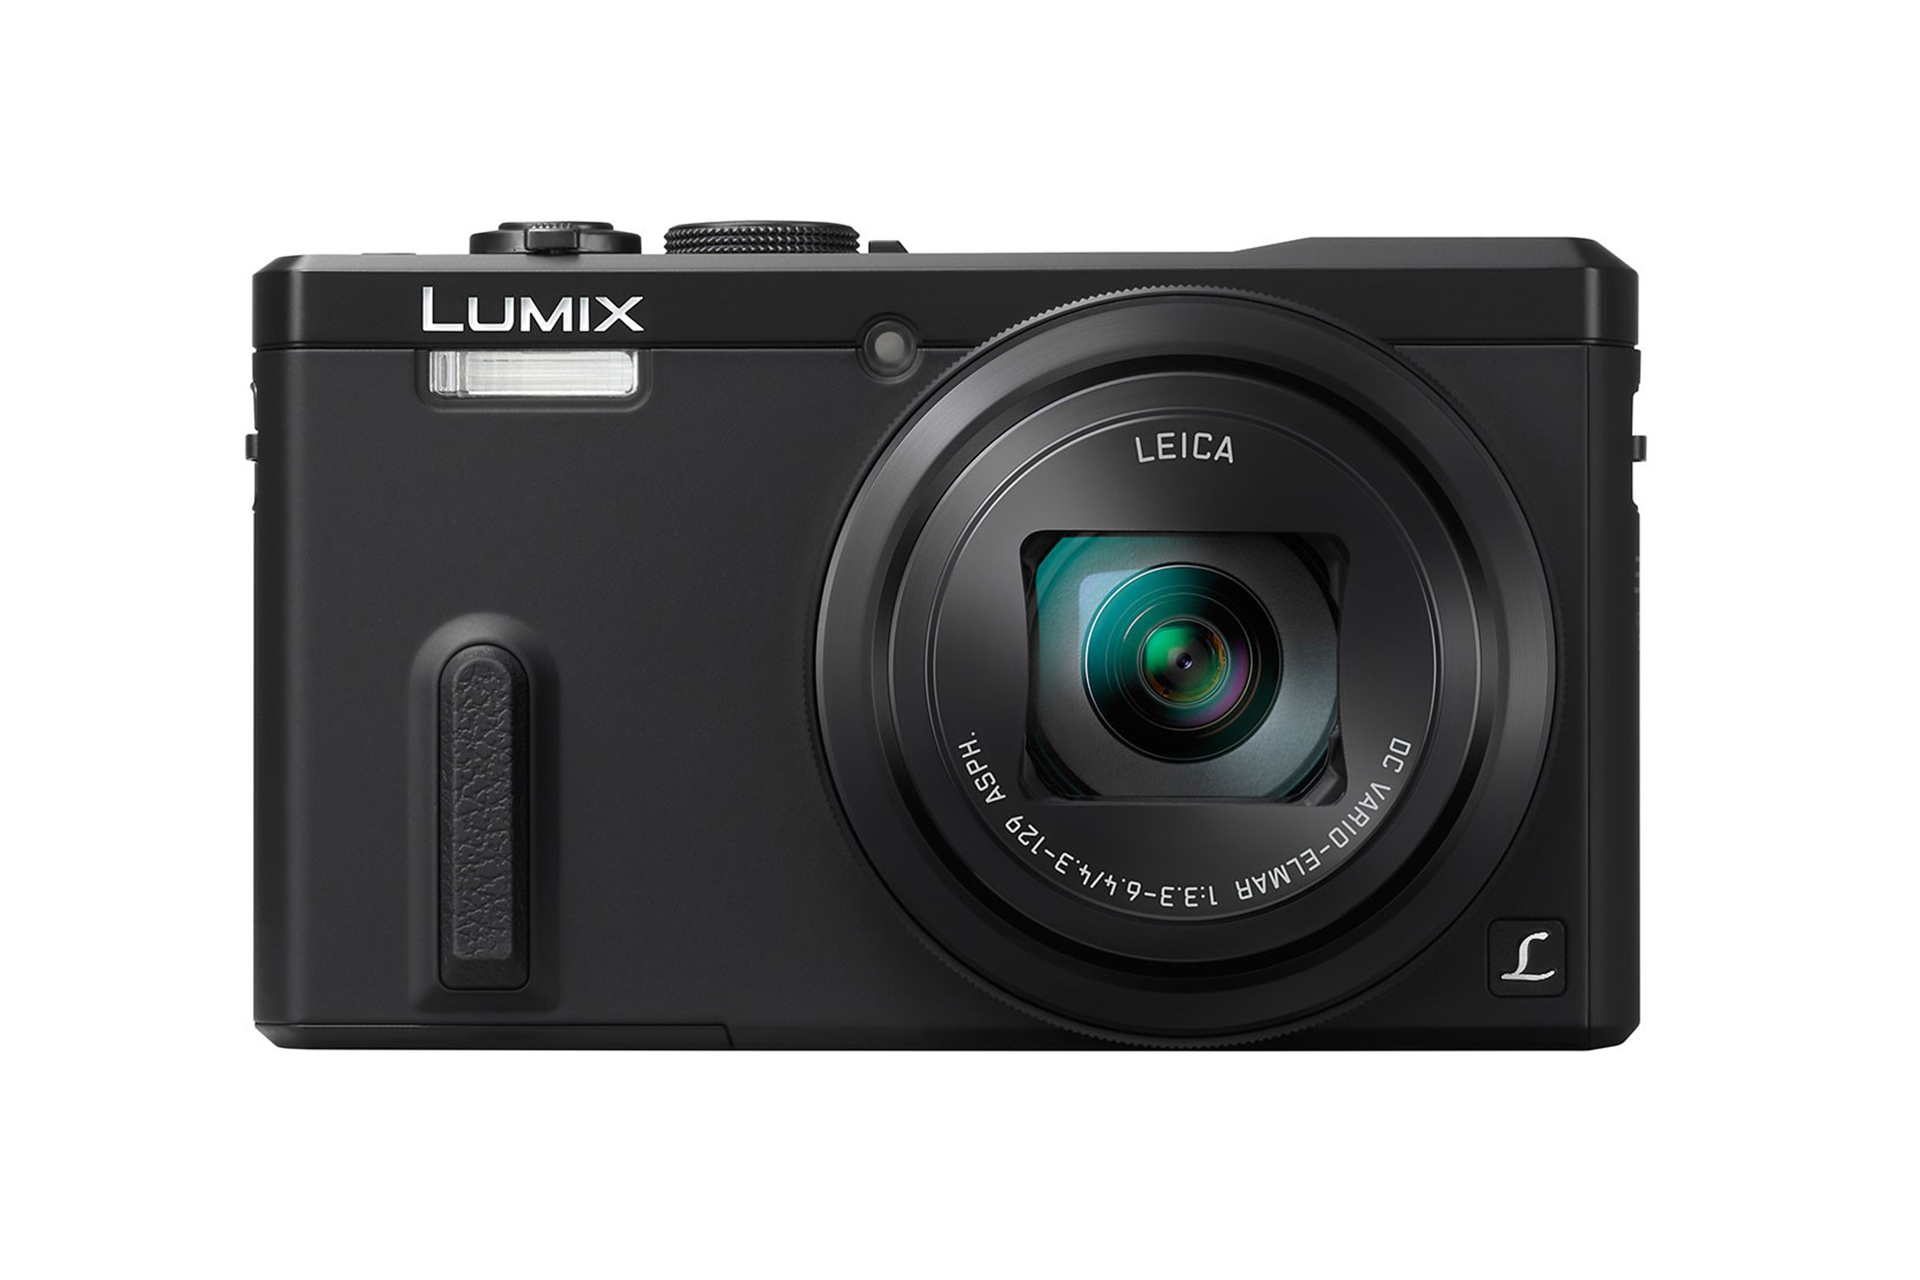 panasonic lumix dmc zs40 travel zoom